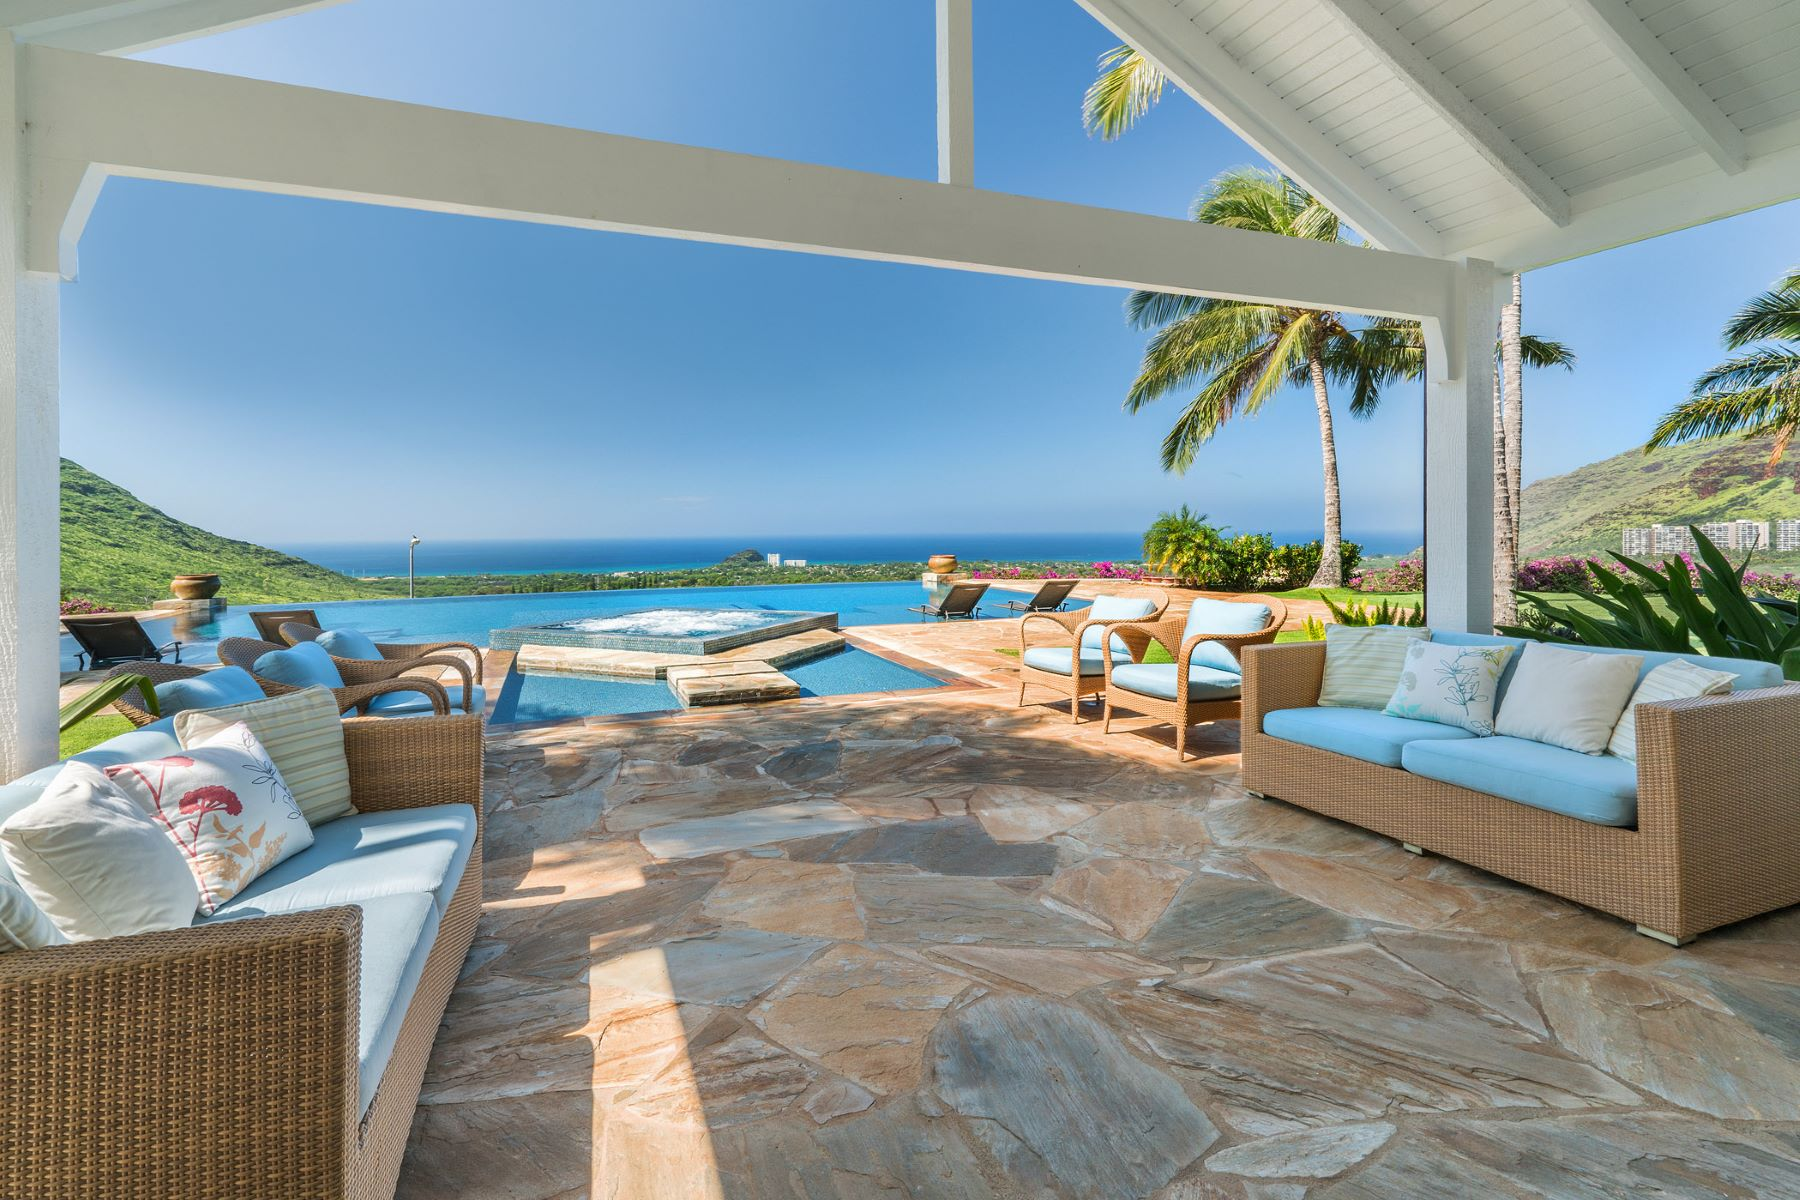 Tek Ailelik Ev için Satış at Award Winning Private Estate with Ocean Views 84-870 Alahele Street Waianae, Hawaii 96792 Amerika Birleşik Devletleri